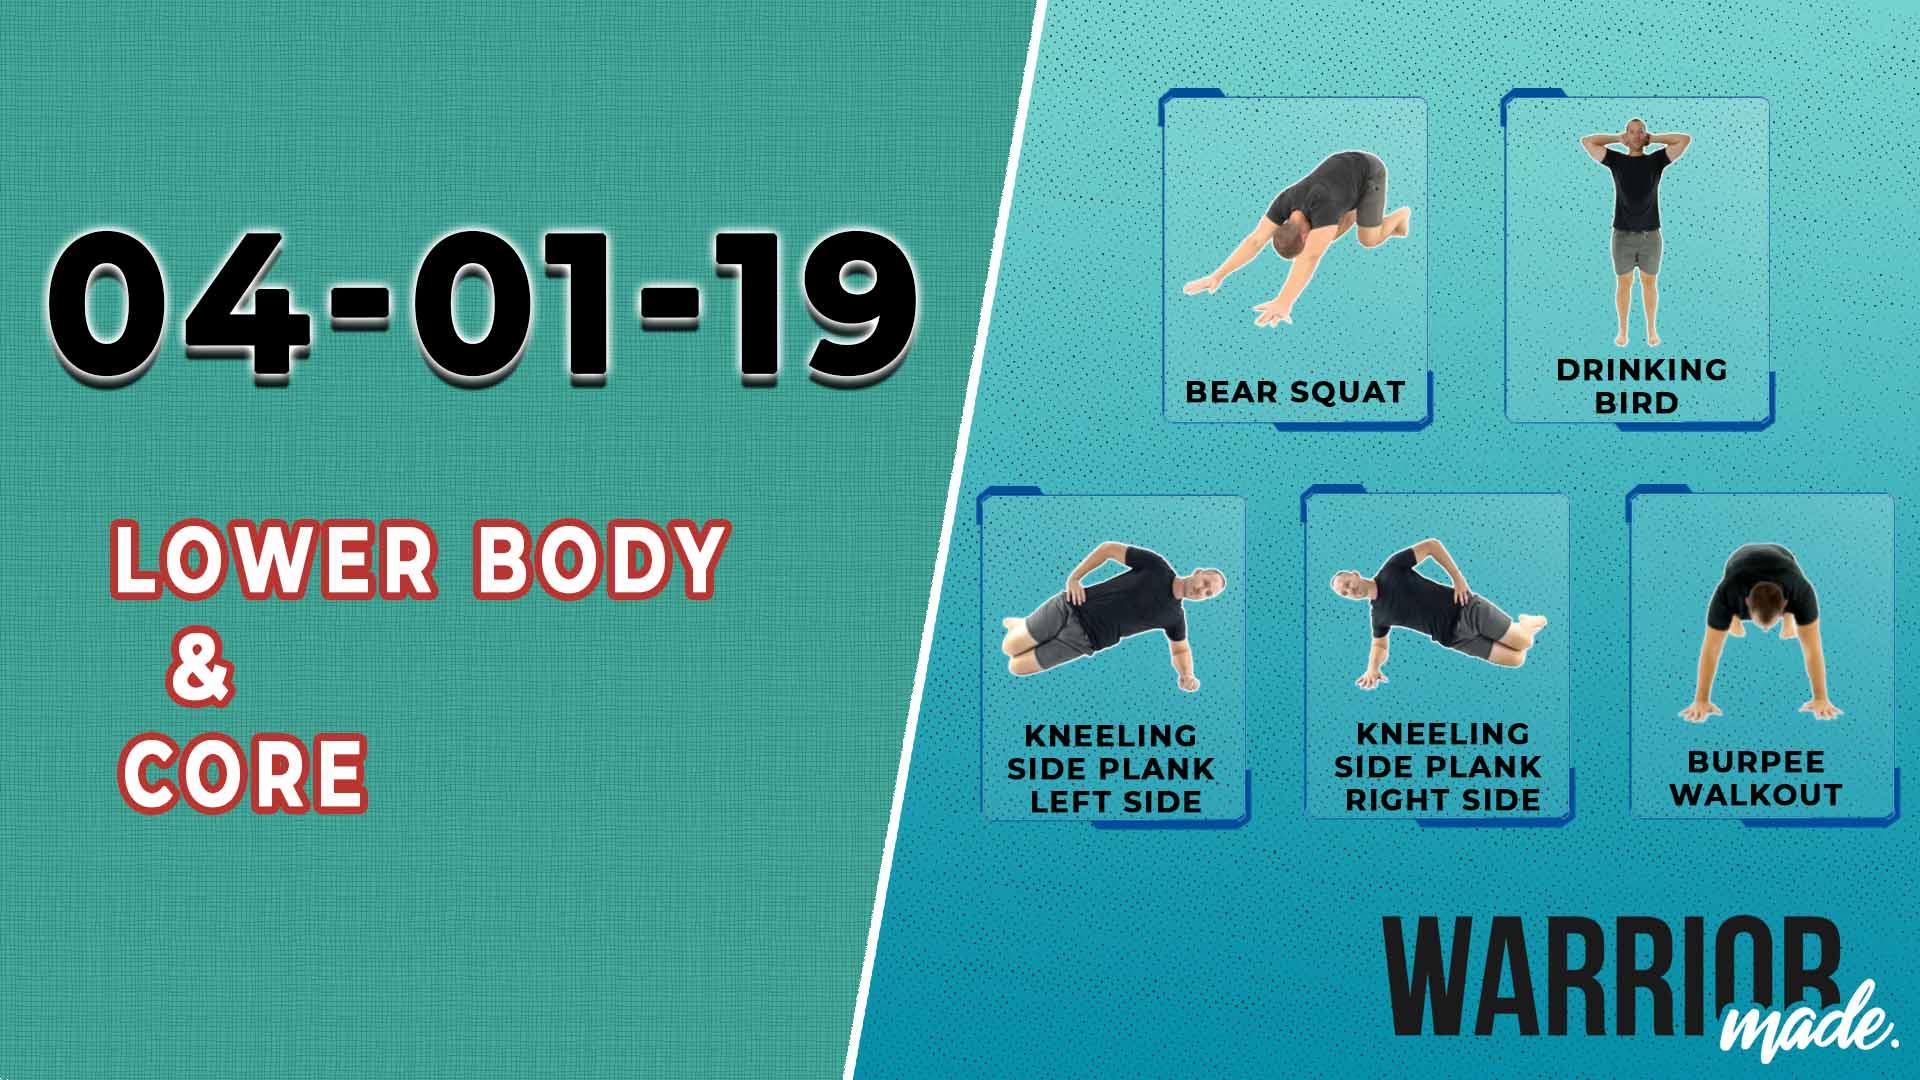 workouts-04-01-19